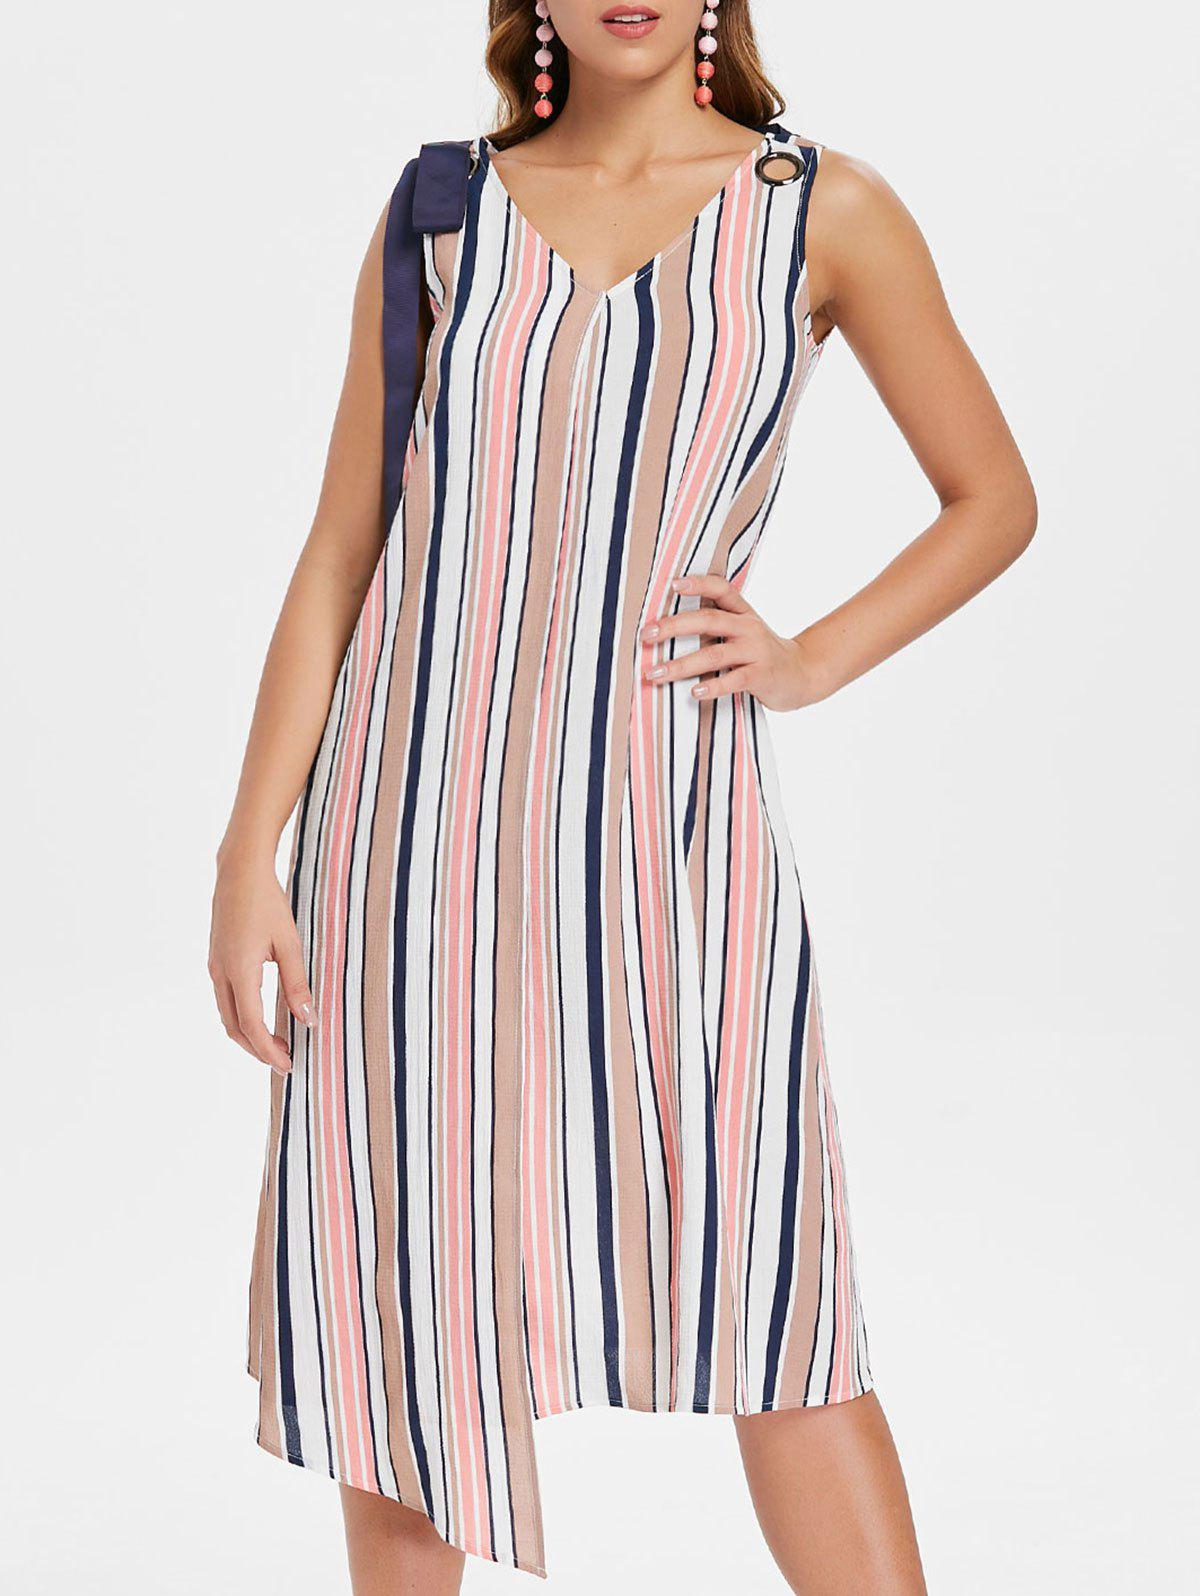 Striped Sleeveless Casual Dress - multicolor L